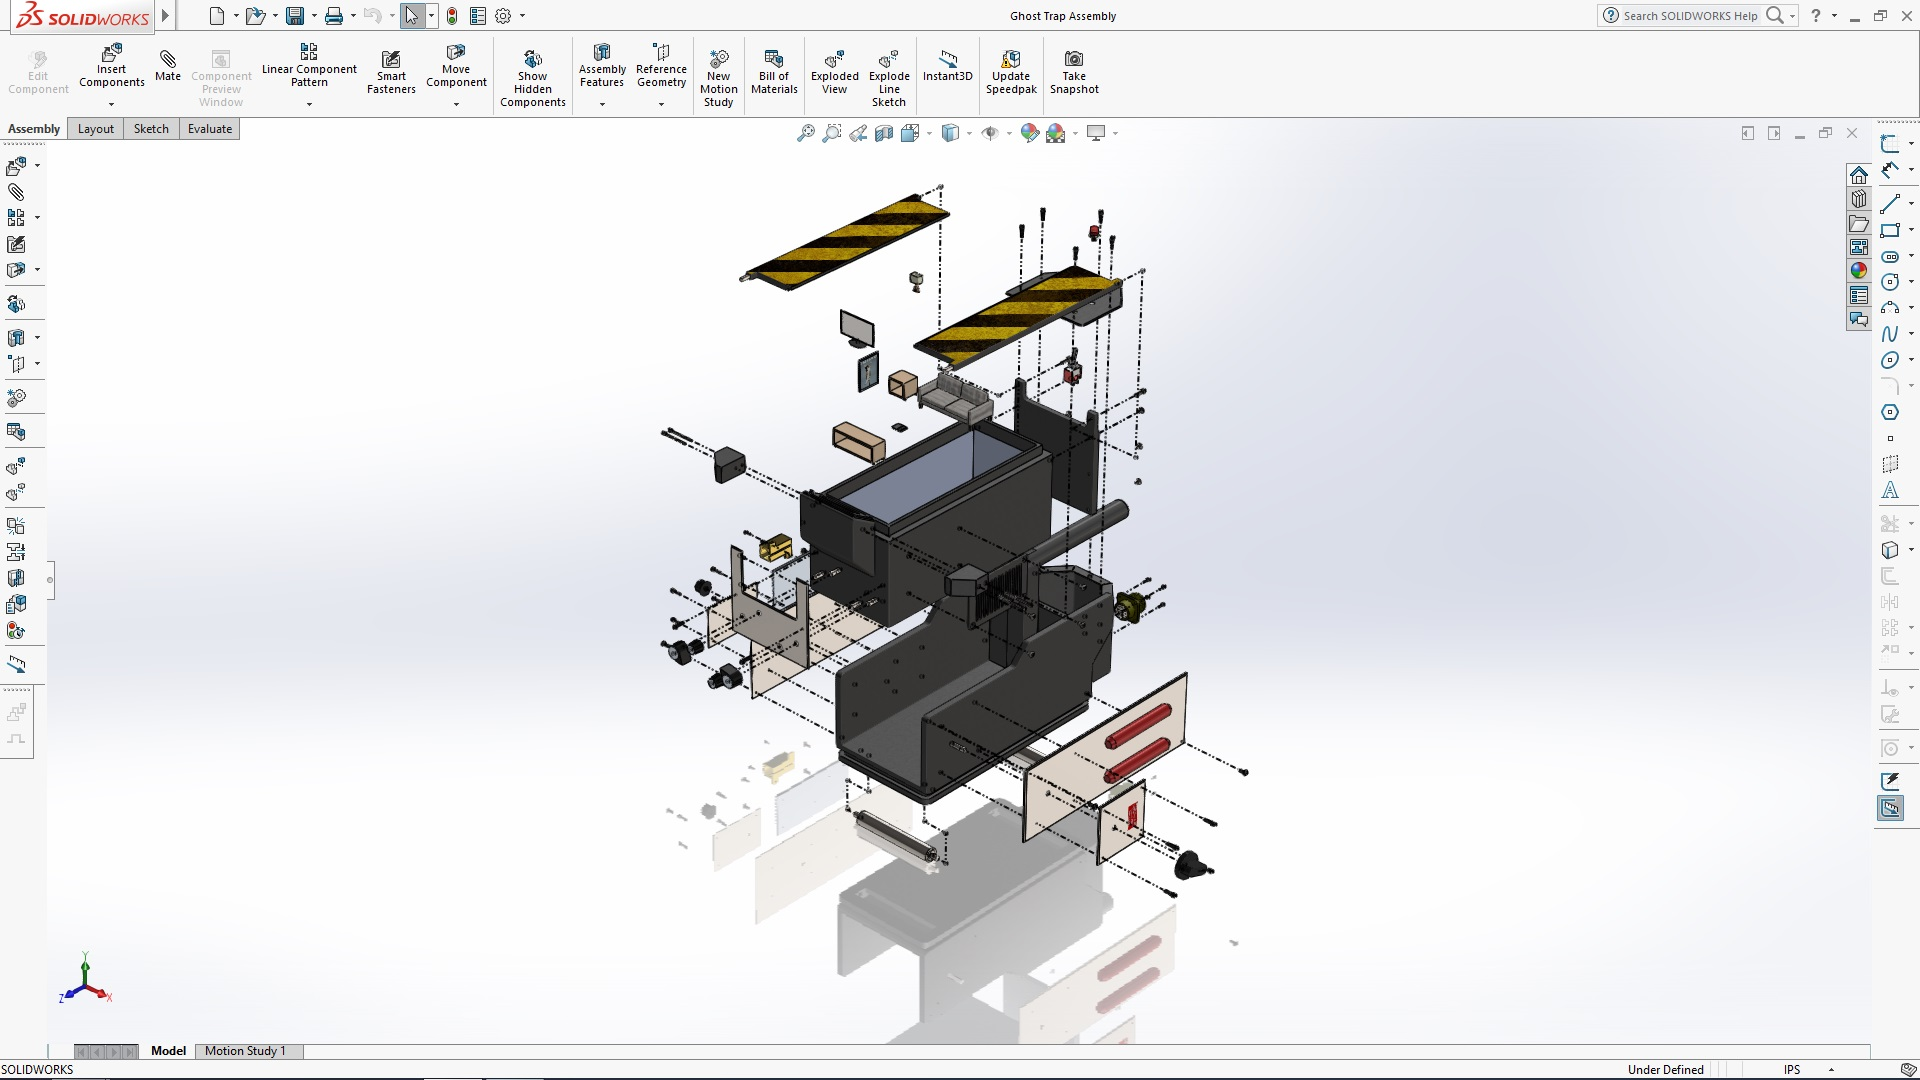 Solidworks ghost trap tutorial part 4 baditri Image collections